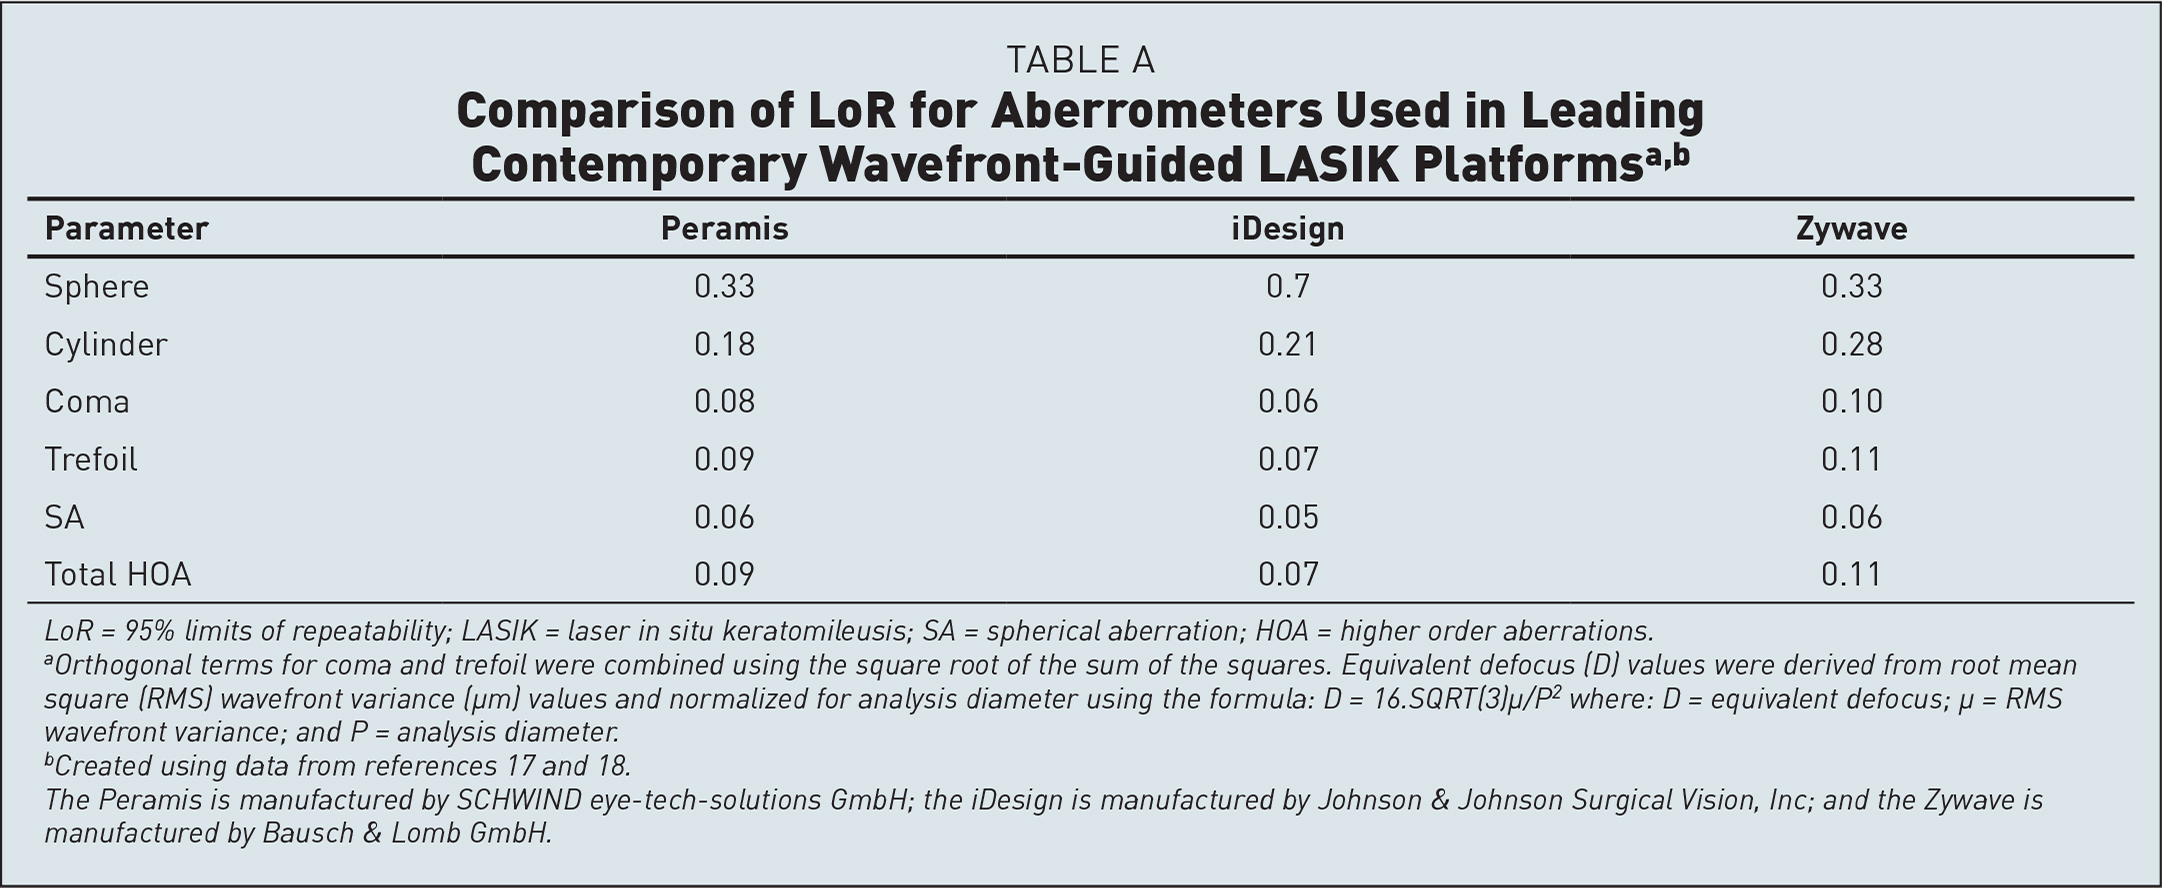 Comparison of LoR for Aberrometers Used in Leading Contemporary Wavefront-Guided LASIK Platformsa,b